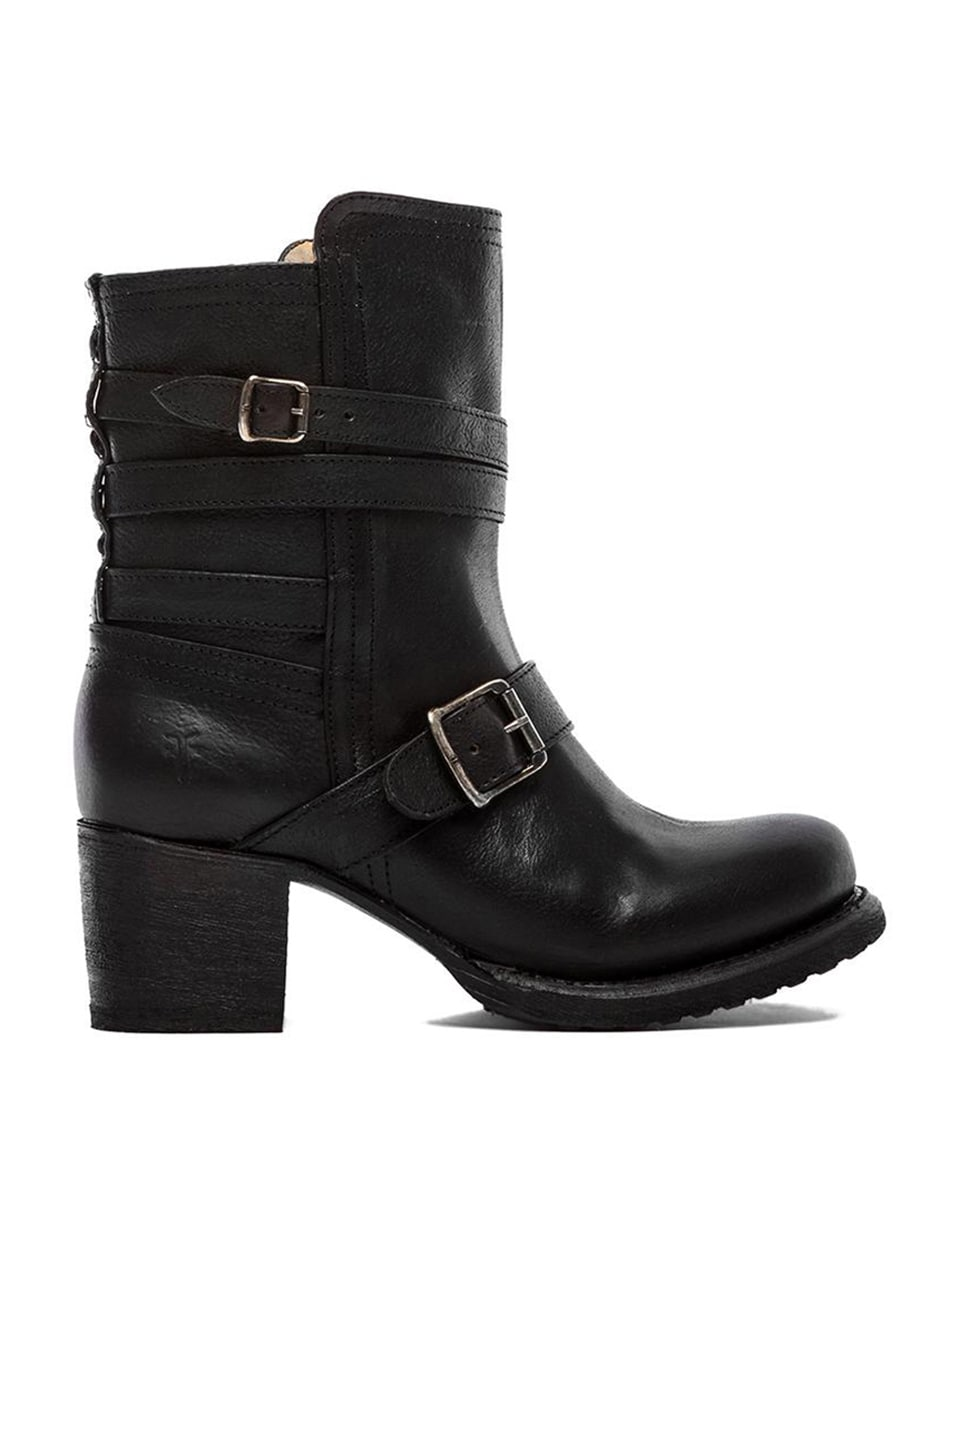 Frye Vera Strappy Boot in Black